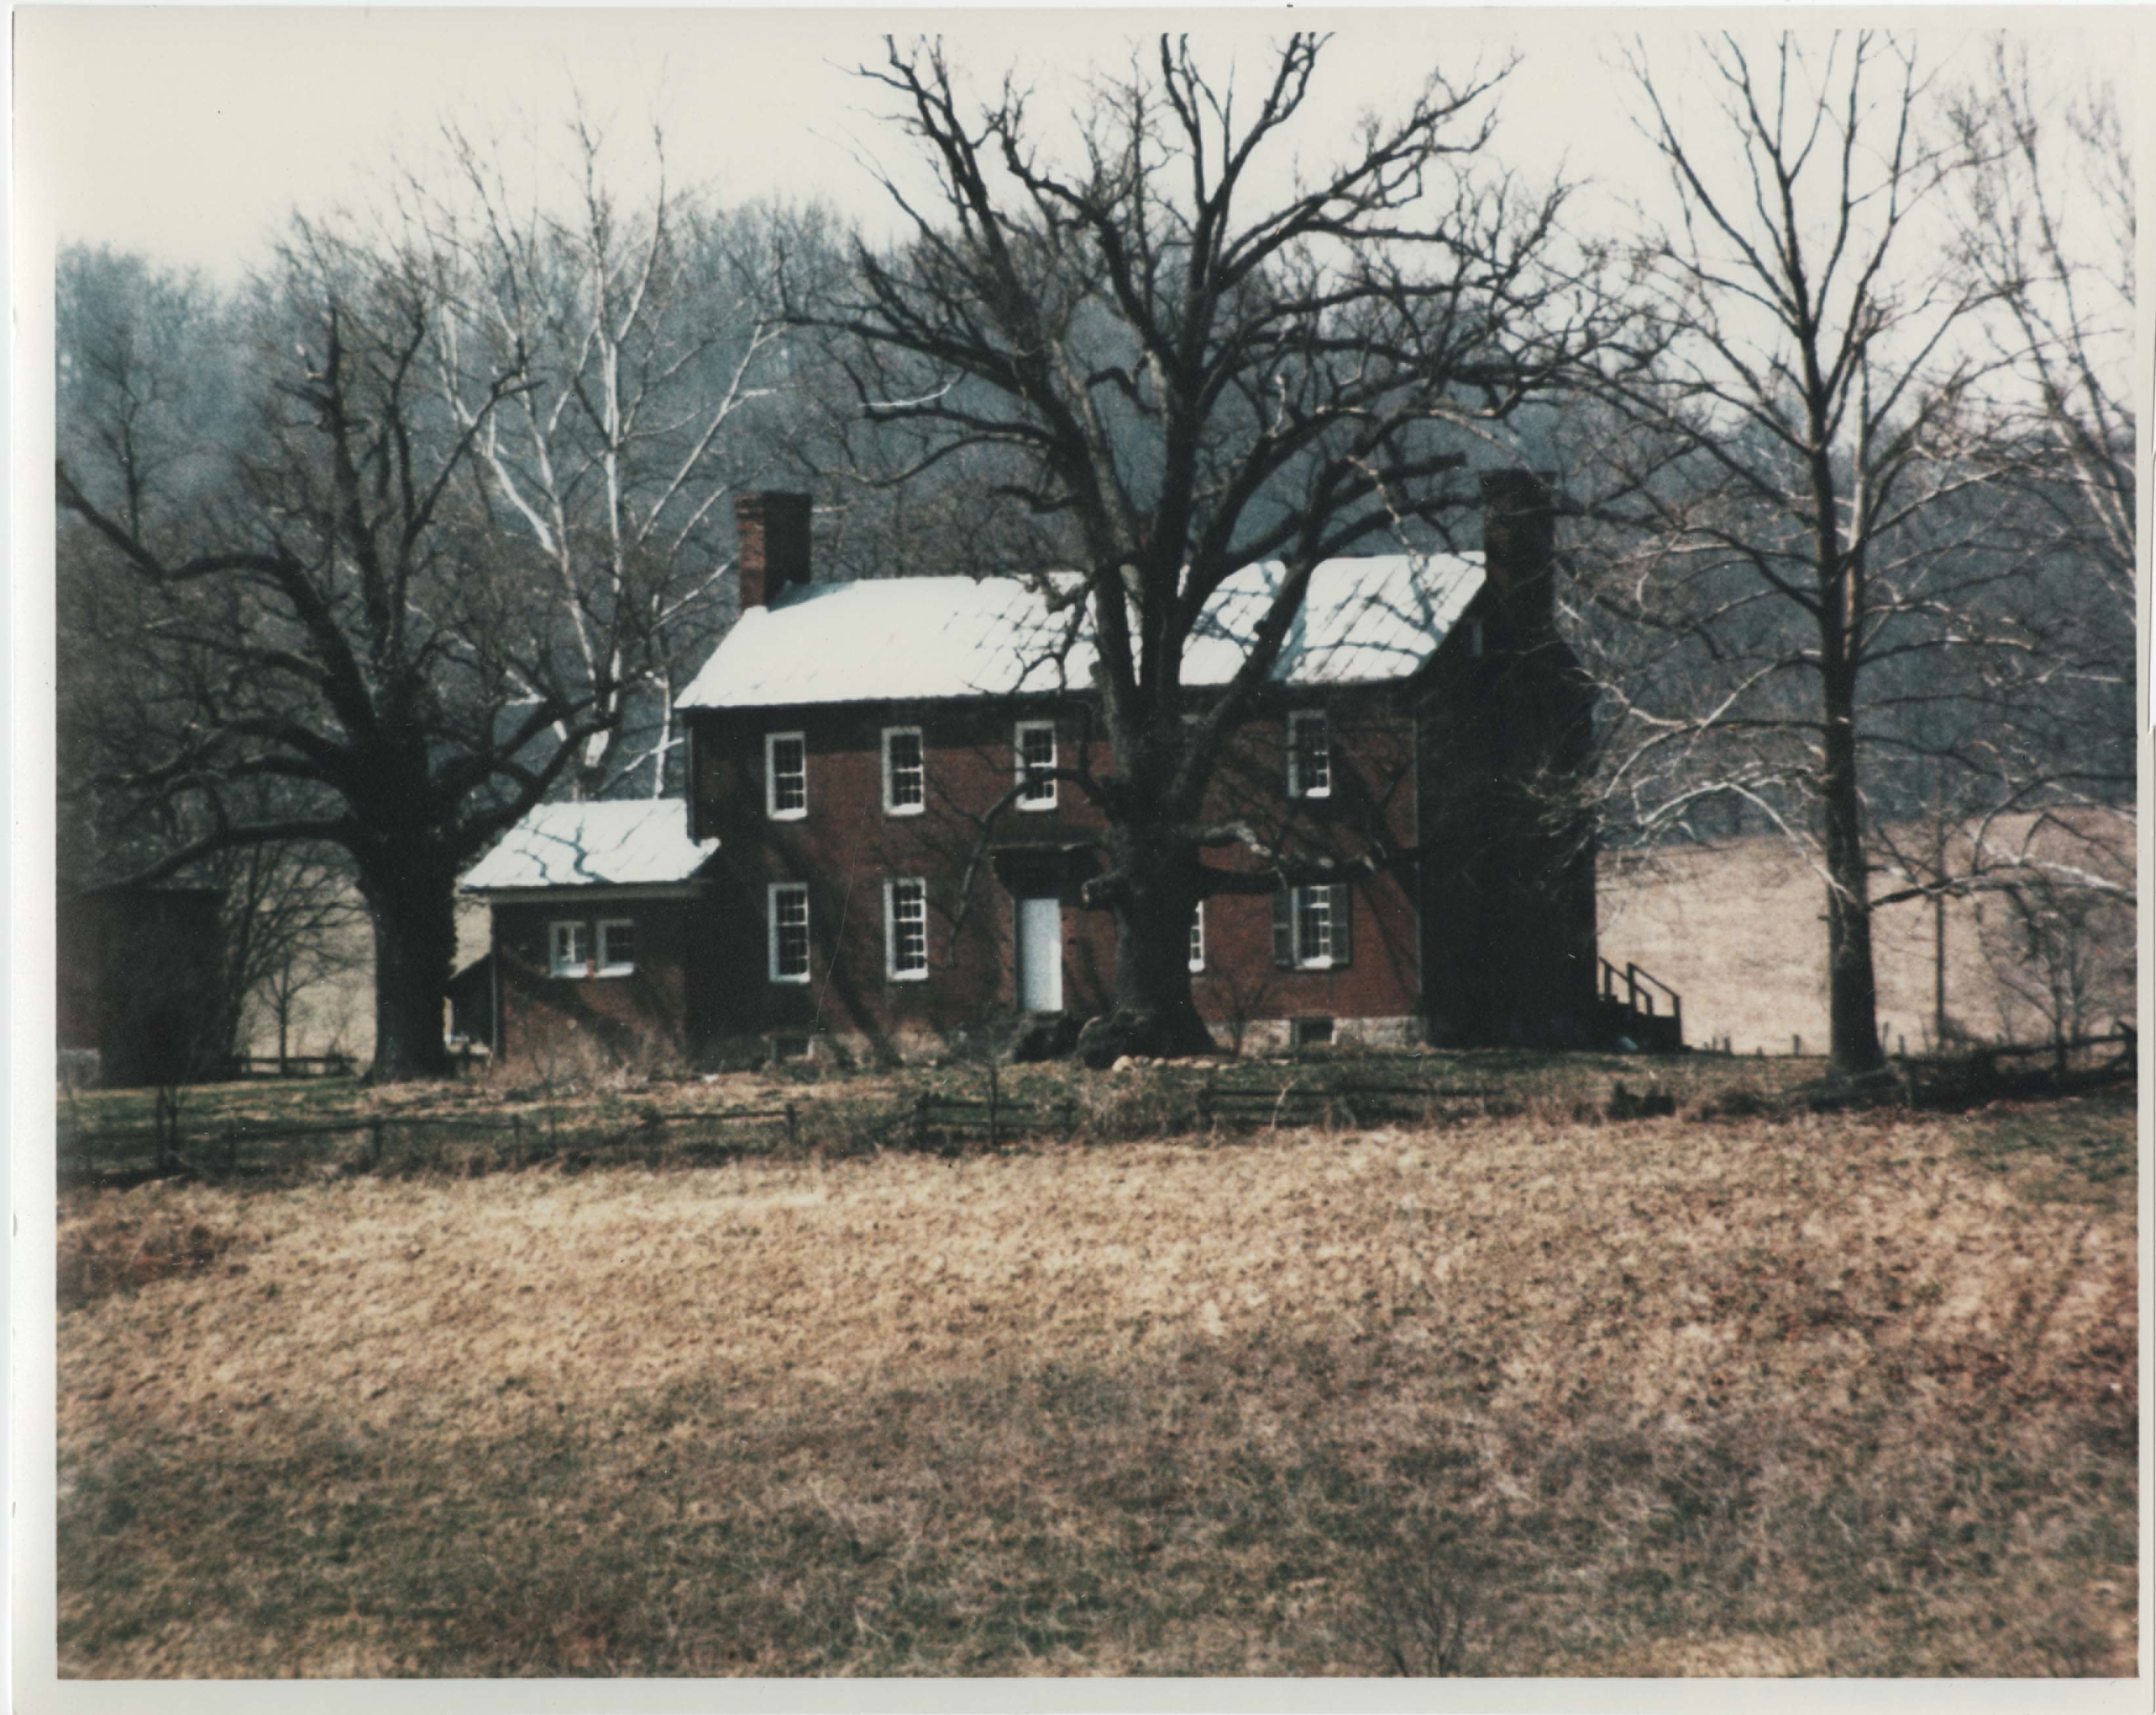 image of the front of the house with a large tree near the doorway